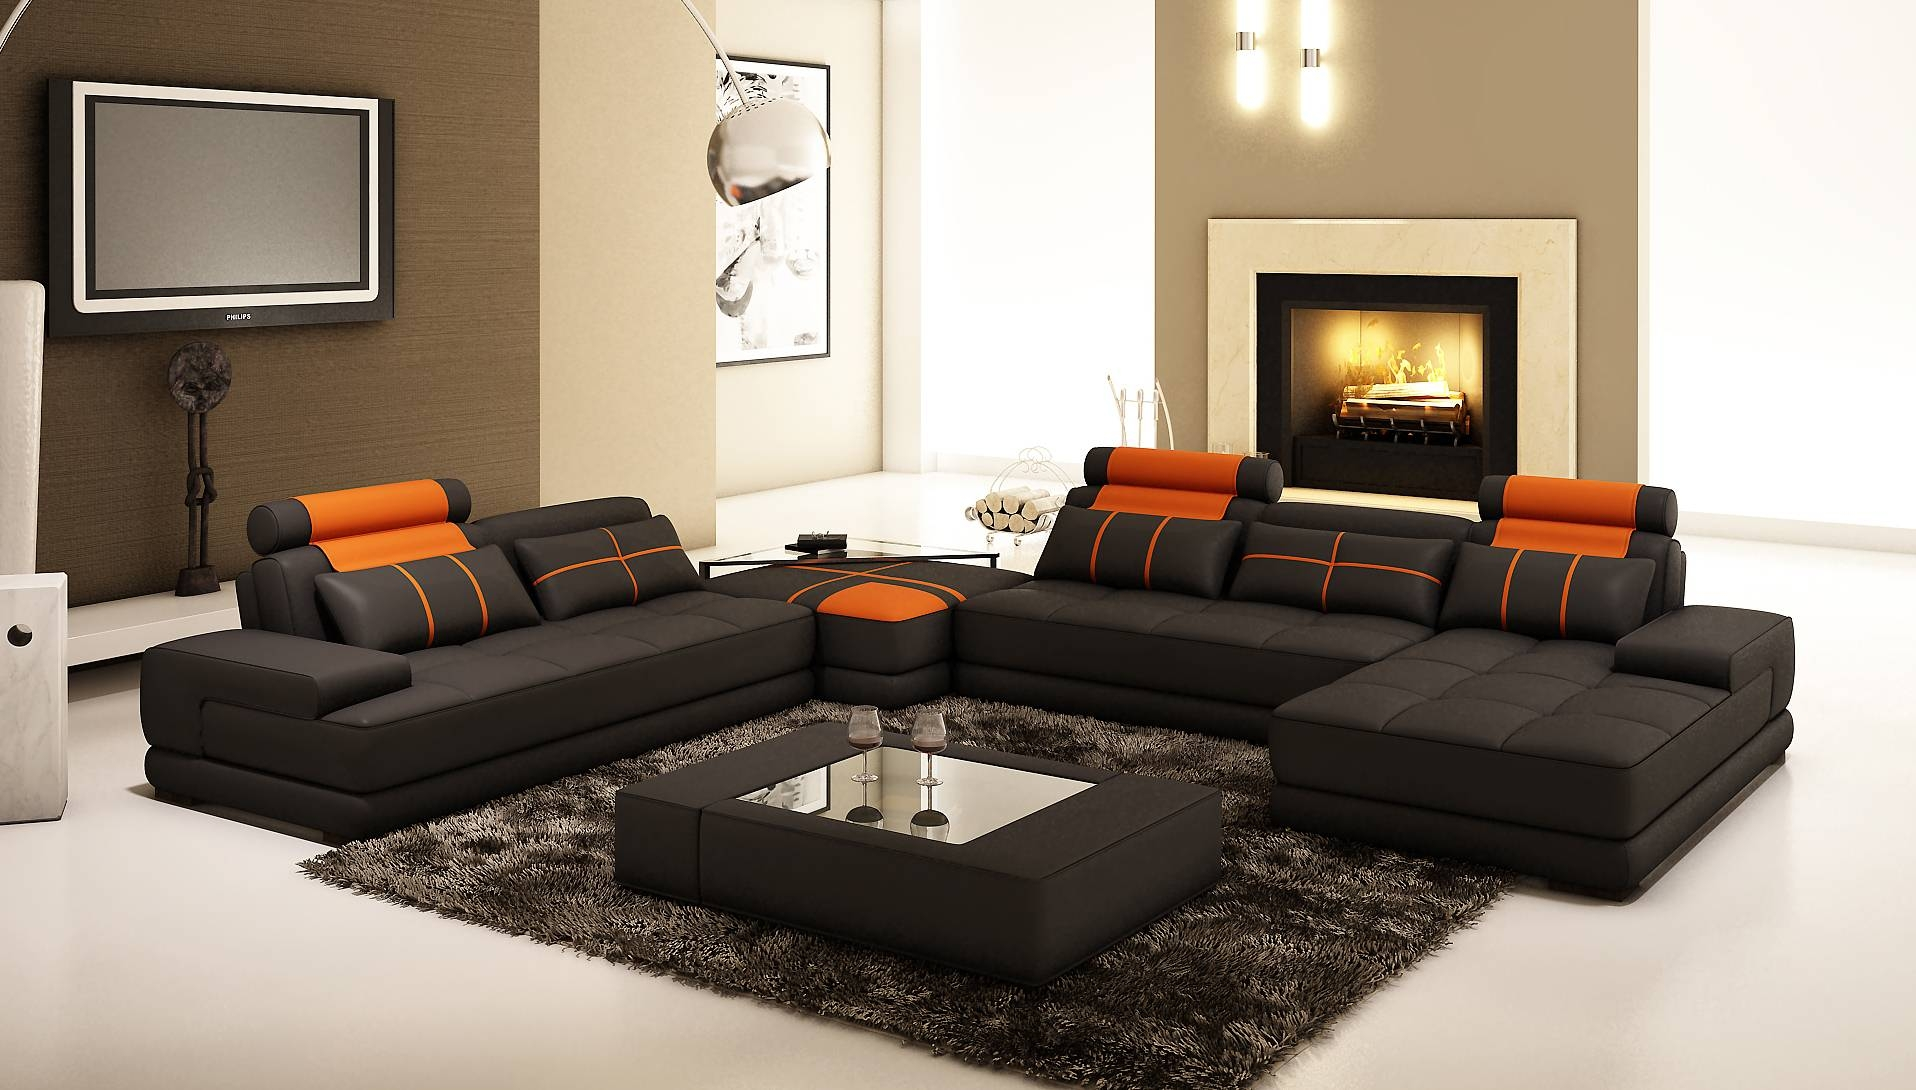 Modern Corner Sofas Images Awesome Innovative Home Design with Large Black Leather Corner Sofas (Image 19 of 30)